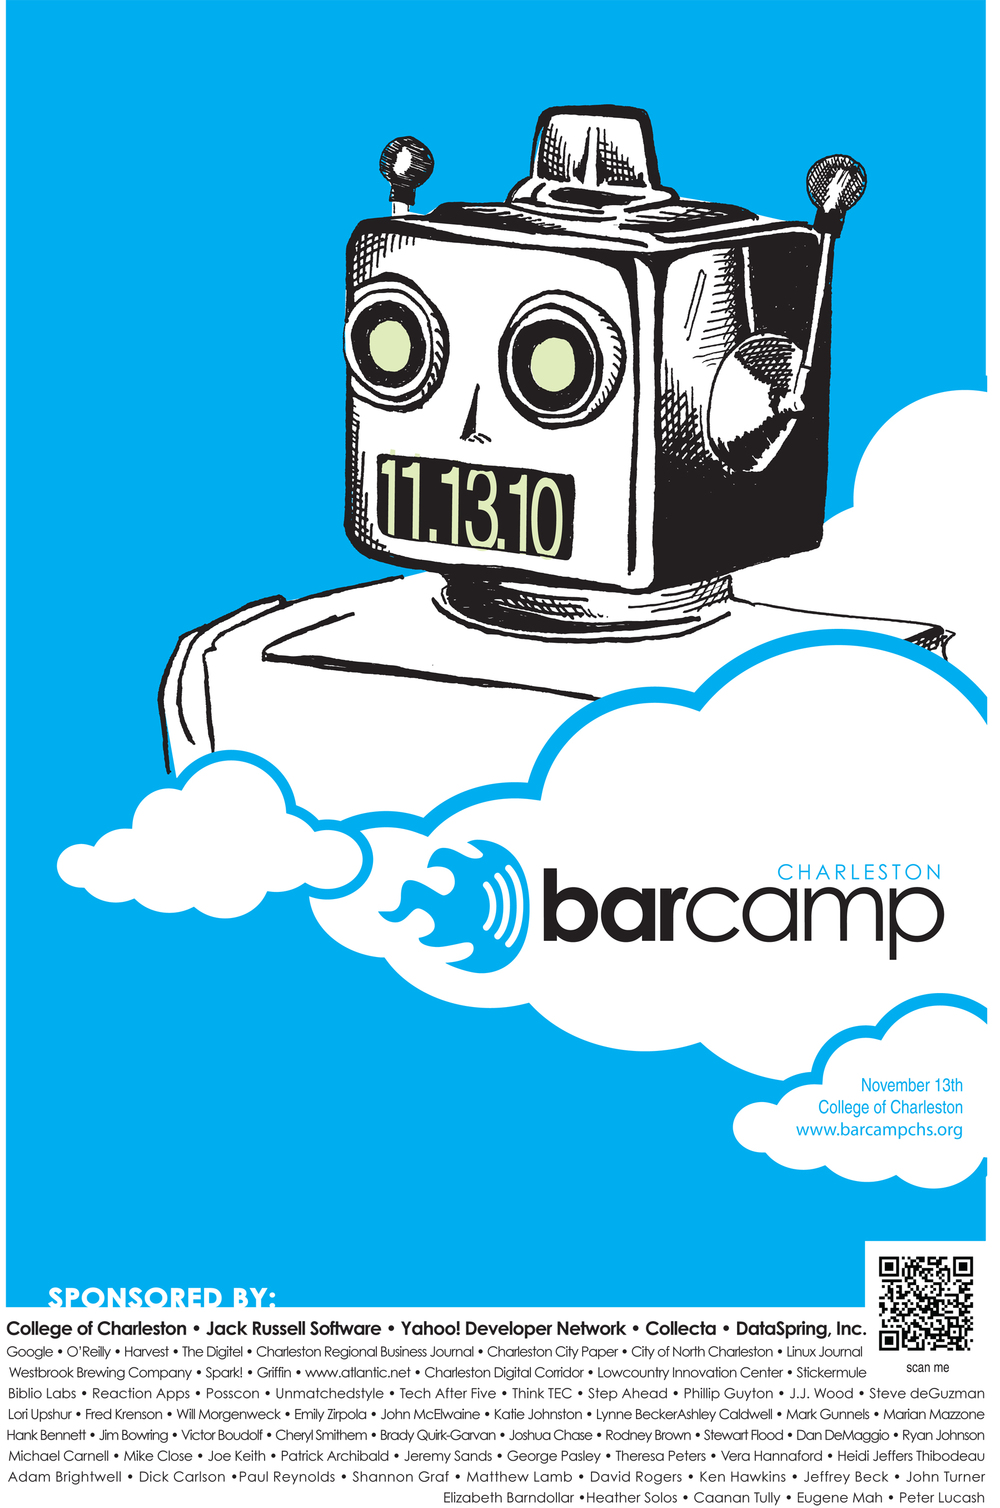 BarCamp Event Poster